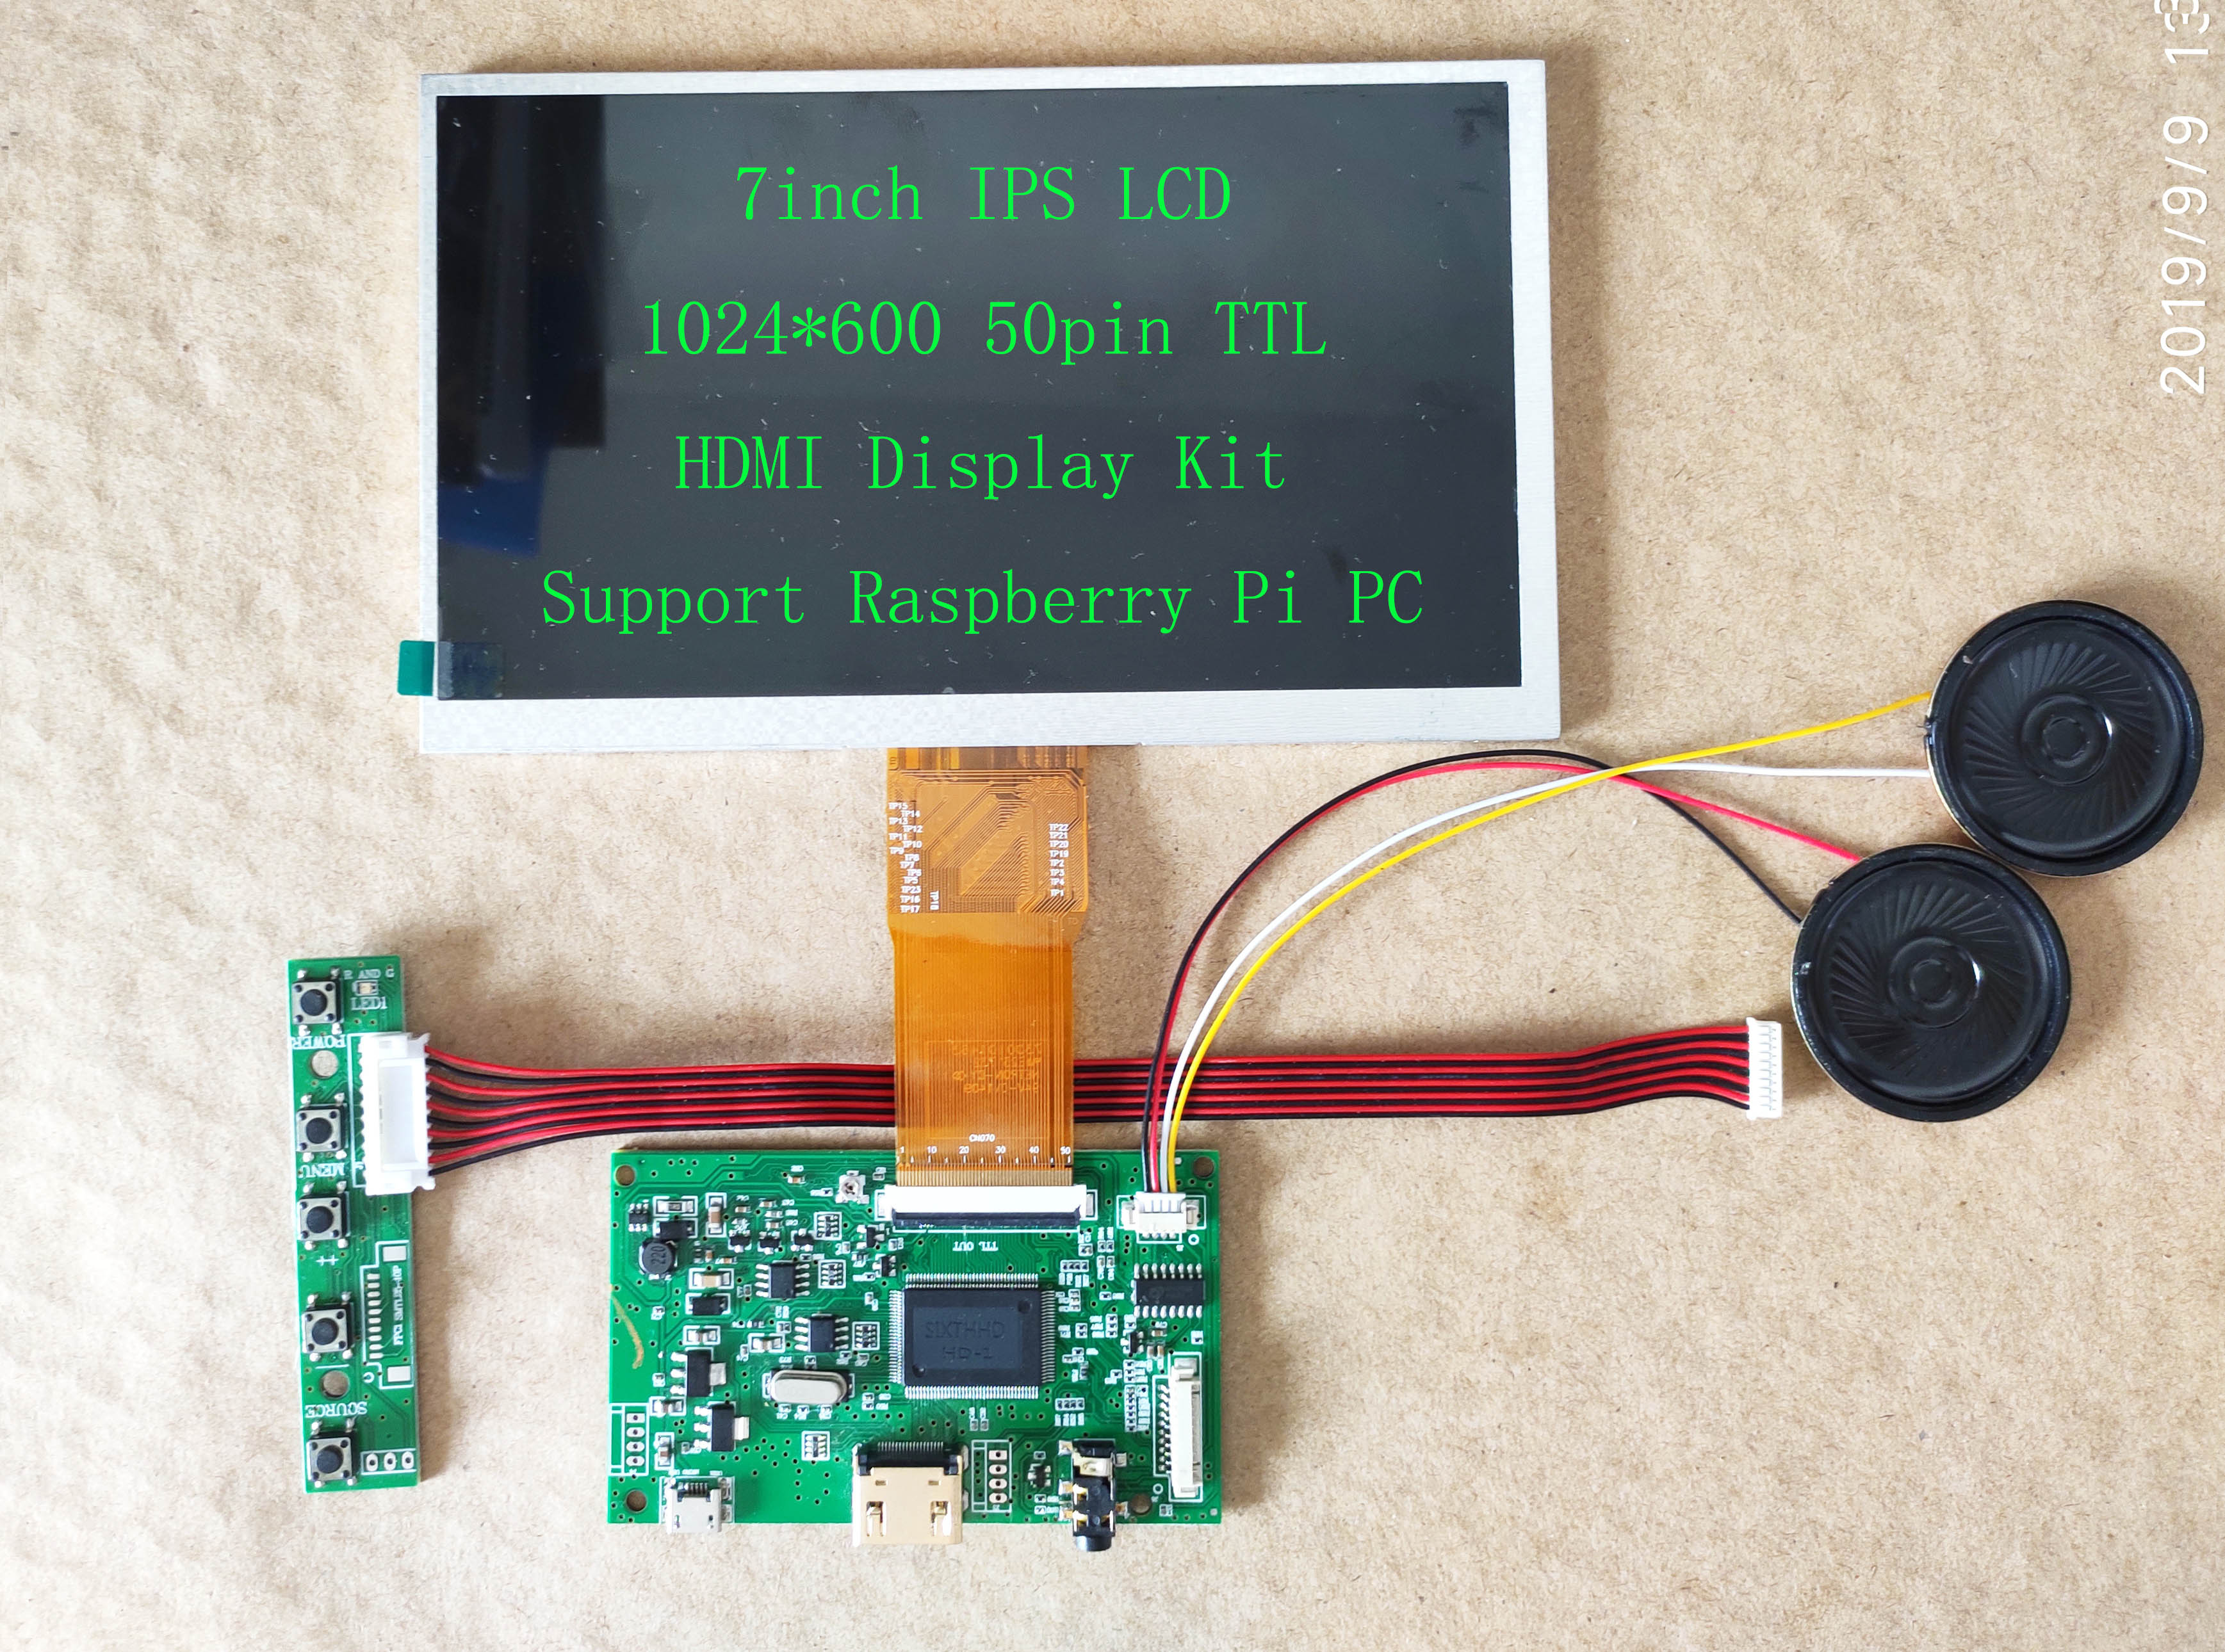 7inch IPS LCD HDMI 1024*600 USB Touch Screen <font><b>Display</b></font> Kit 165mm*100mm For <font><b>Raspberry</b></font> <font><b>Pi</b></font> PS3 PS4 image